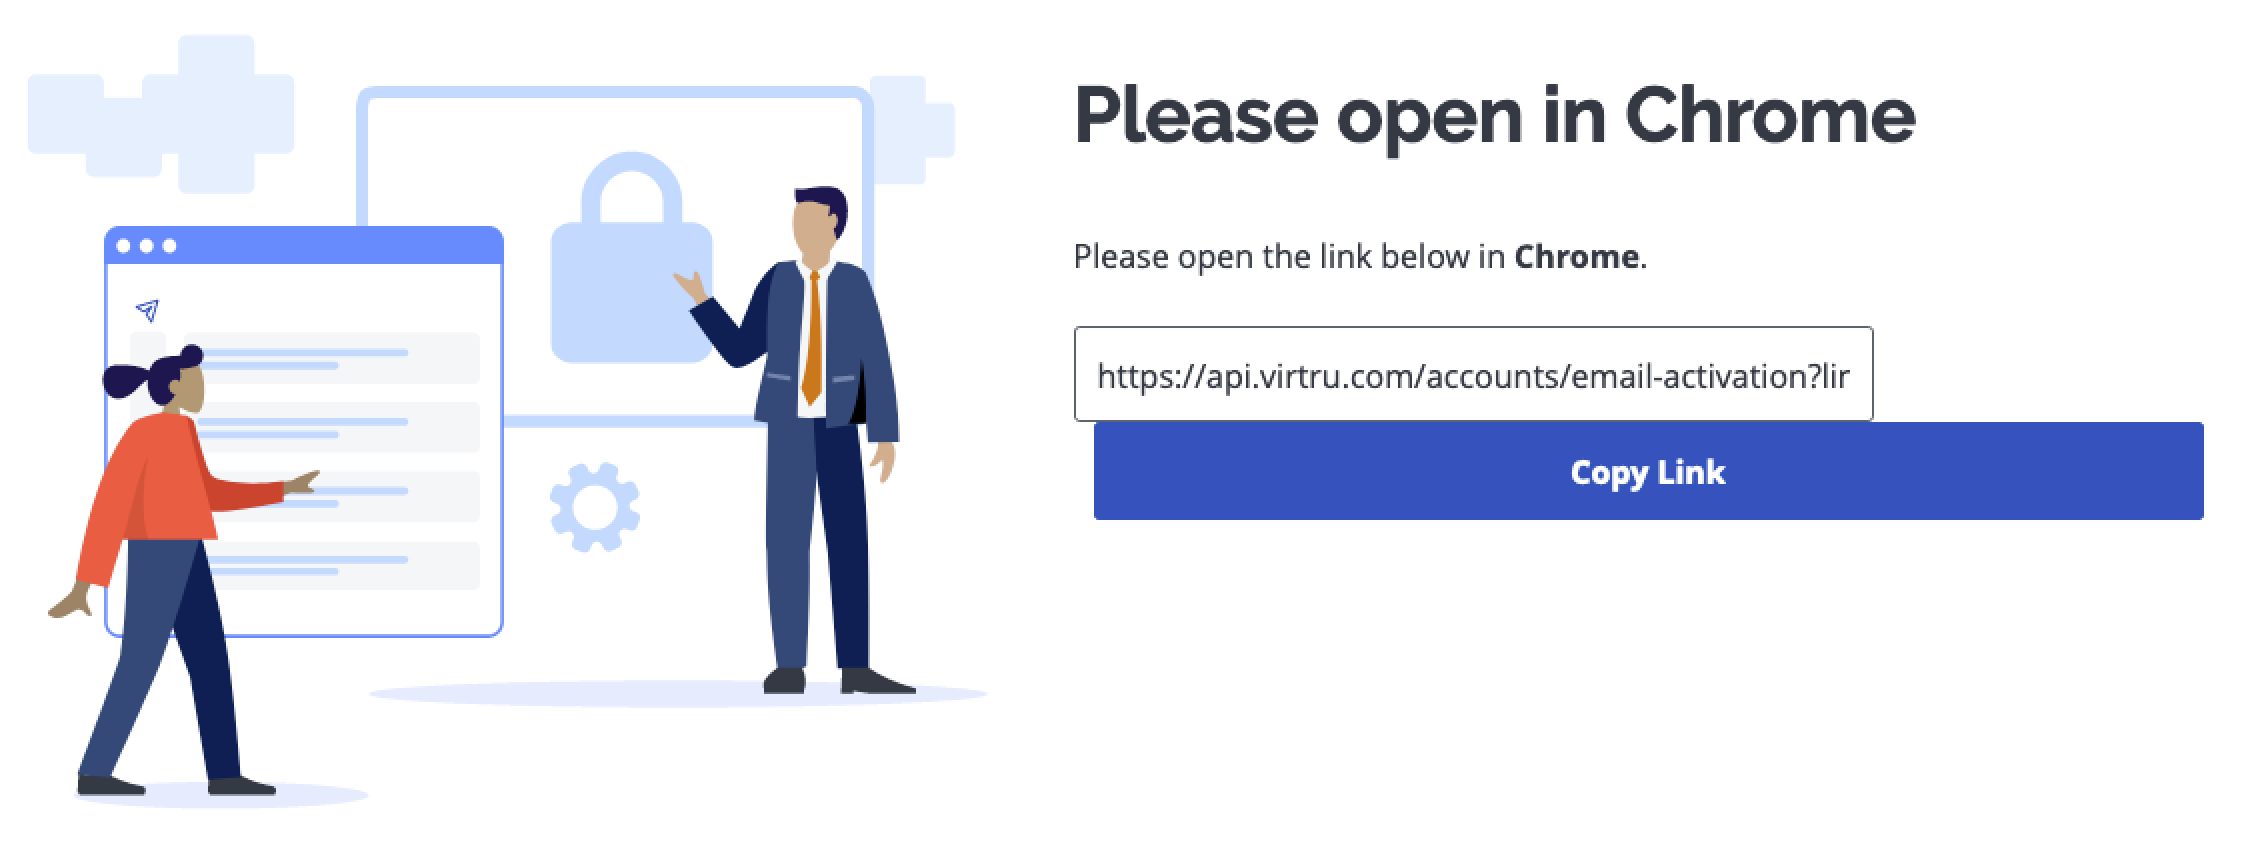 Image of error instructing user to open link in a different browser